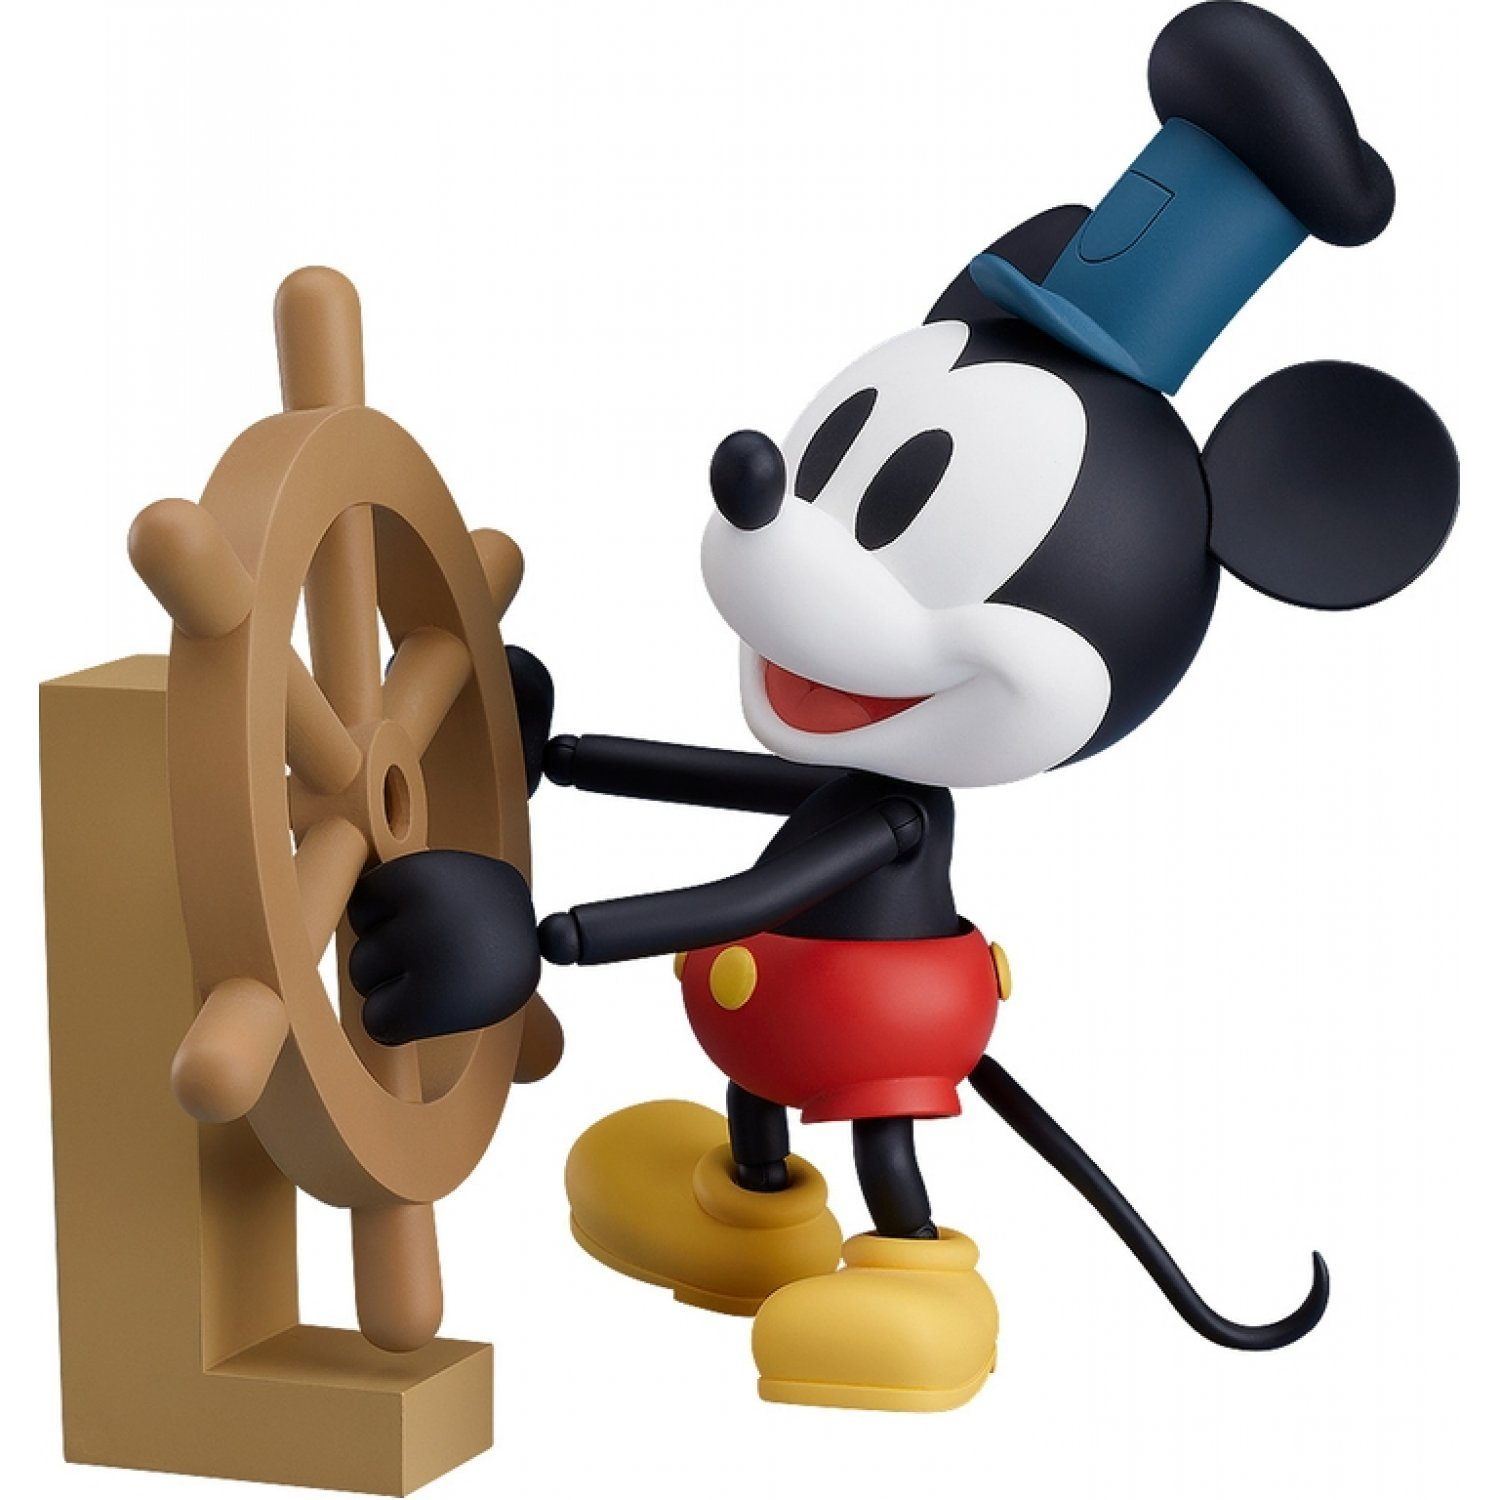 Nendoroid No 1010b Steamboat Willie Mickey Mouse 1928 Ver Color